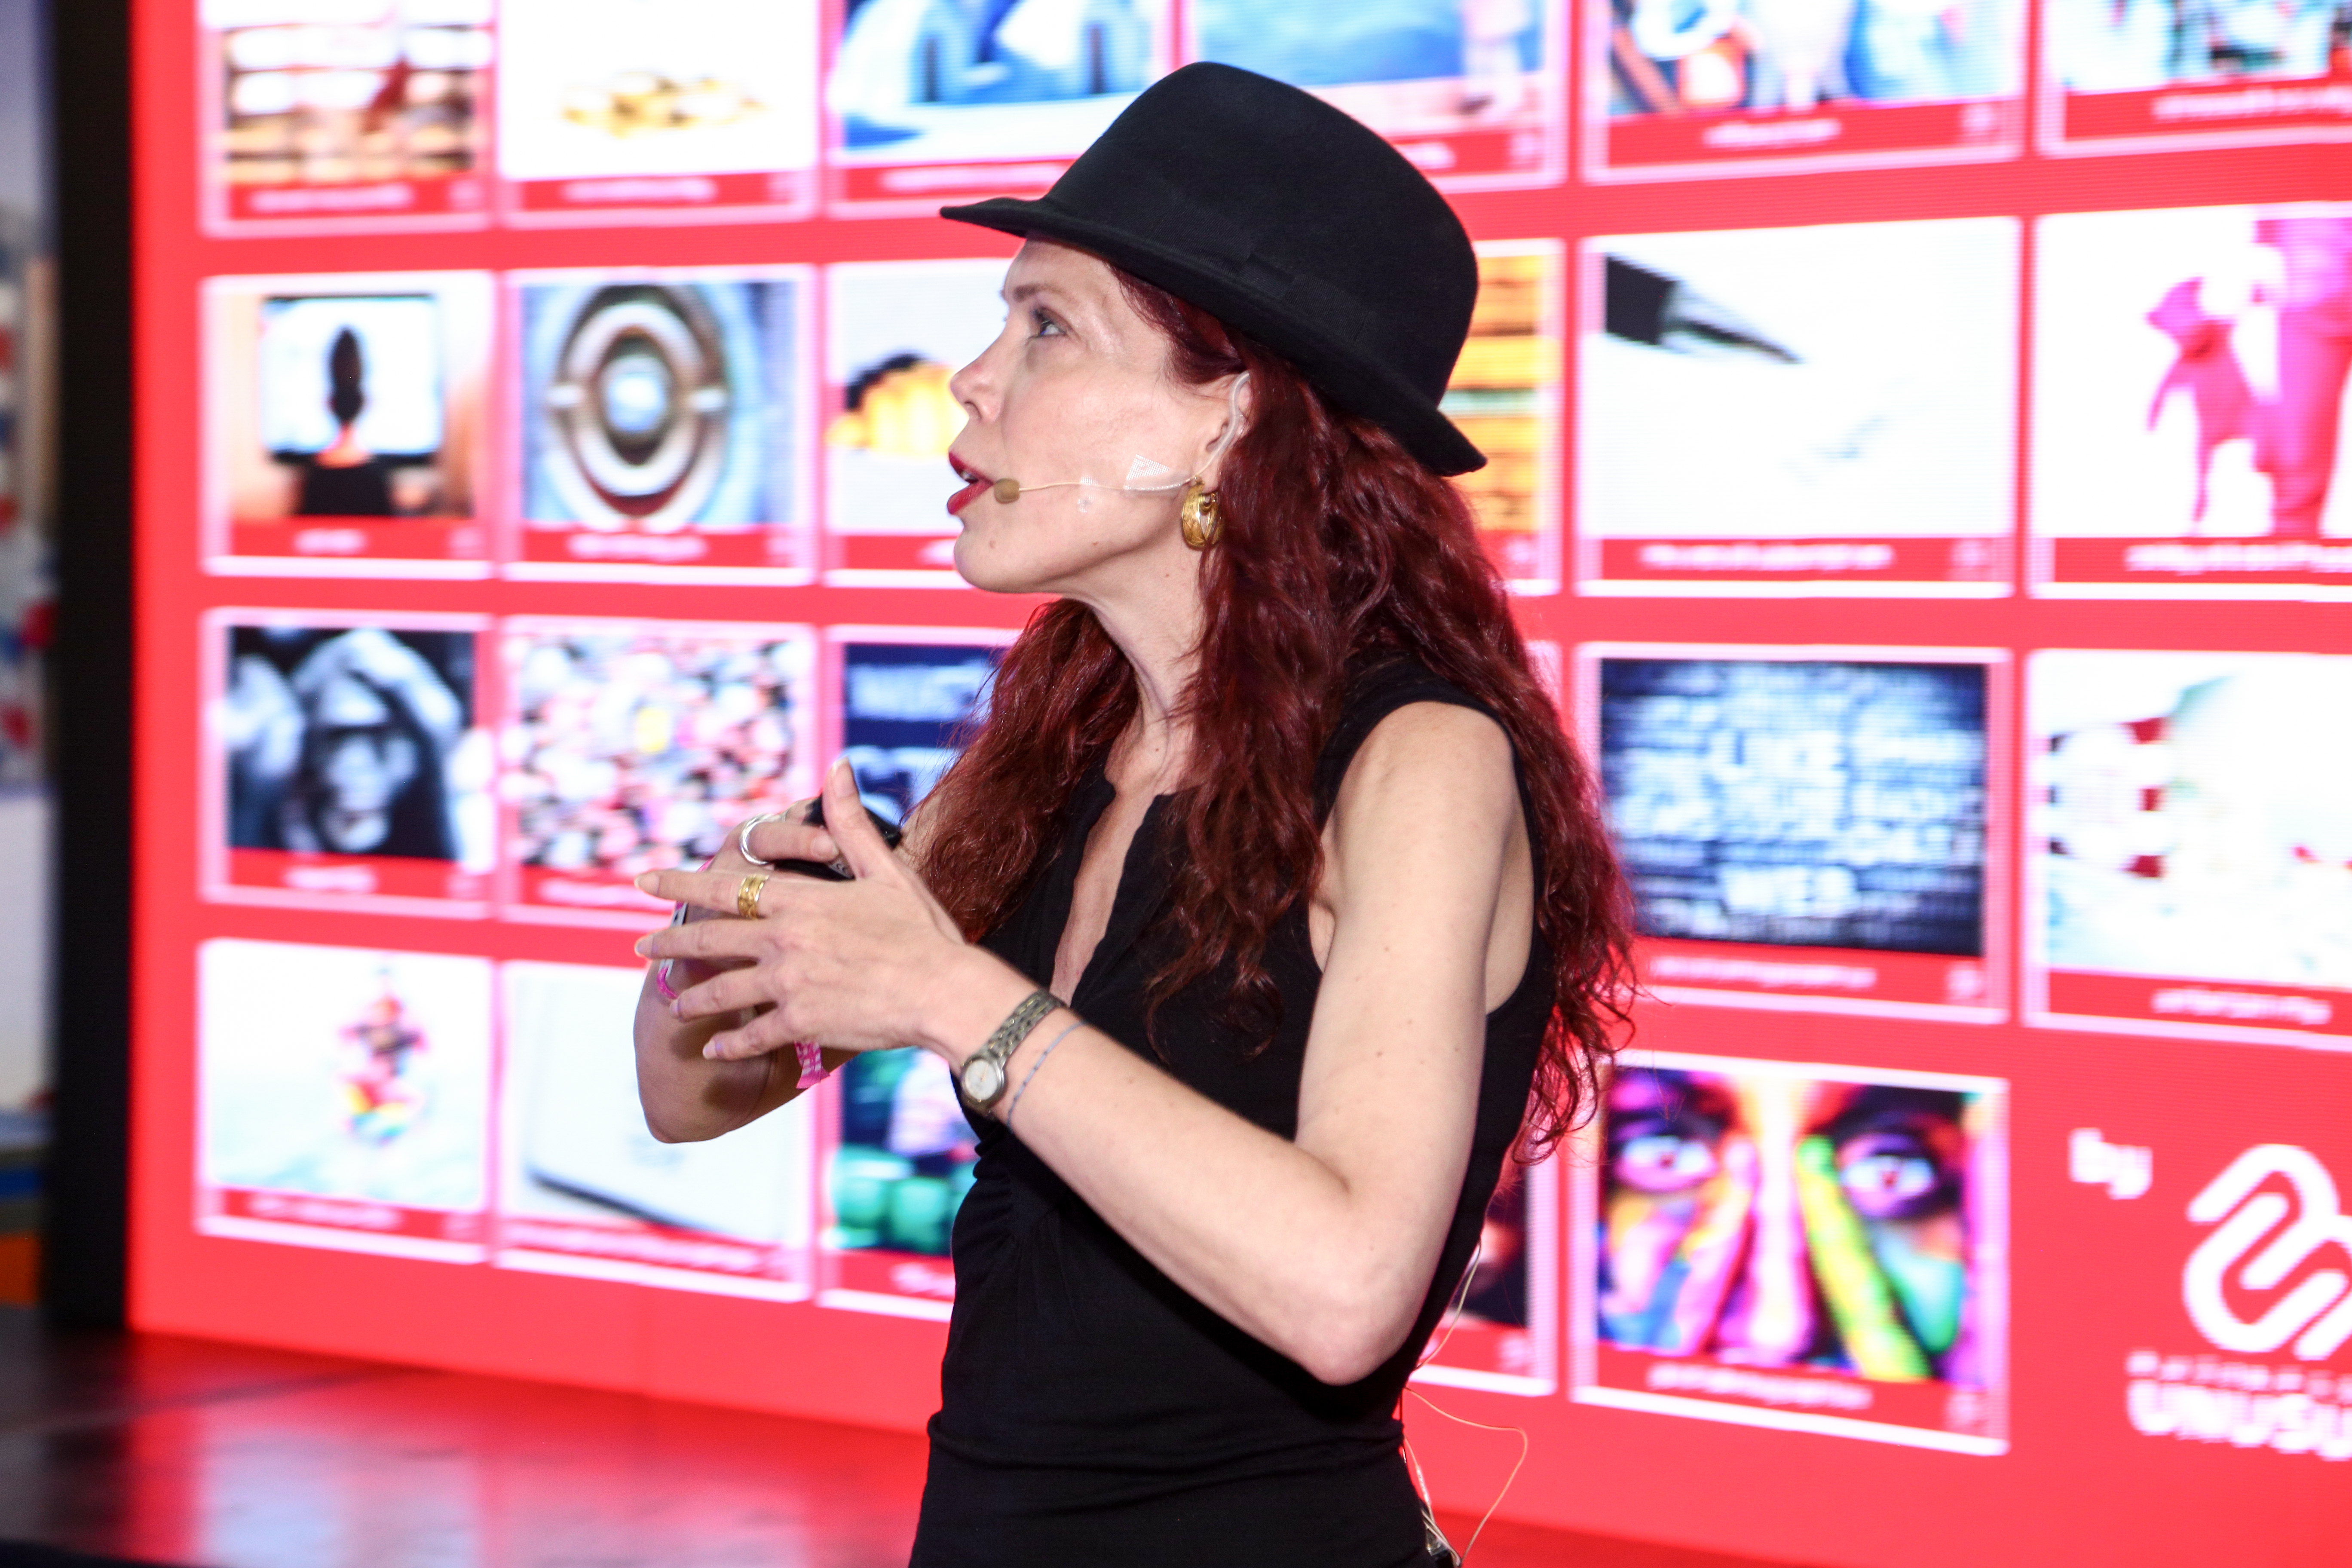 Andrea Lobo - Trendwatcher / Human-Centered Approach / Partner - Business as Unusual